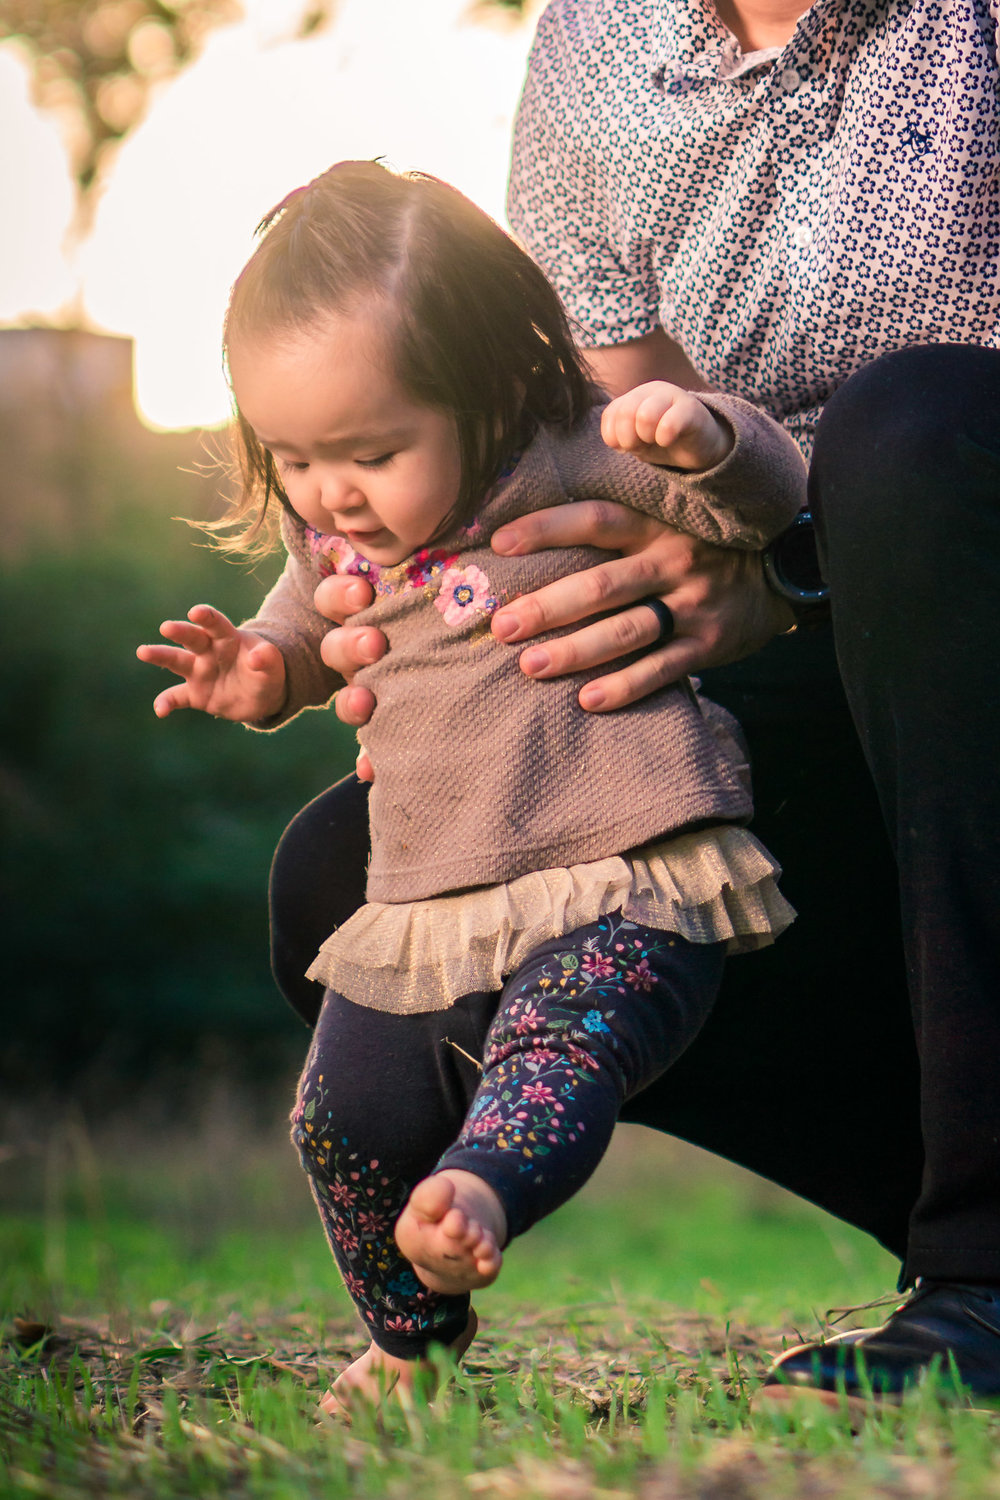 Portrait of a cute Little baby girl  learning to walk in the grass on the Juanita Cooke Trail in Fullerton during a family portrait session